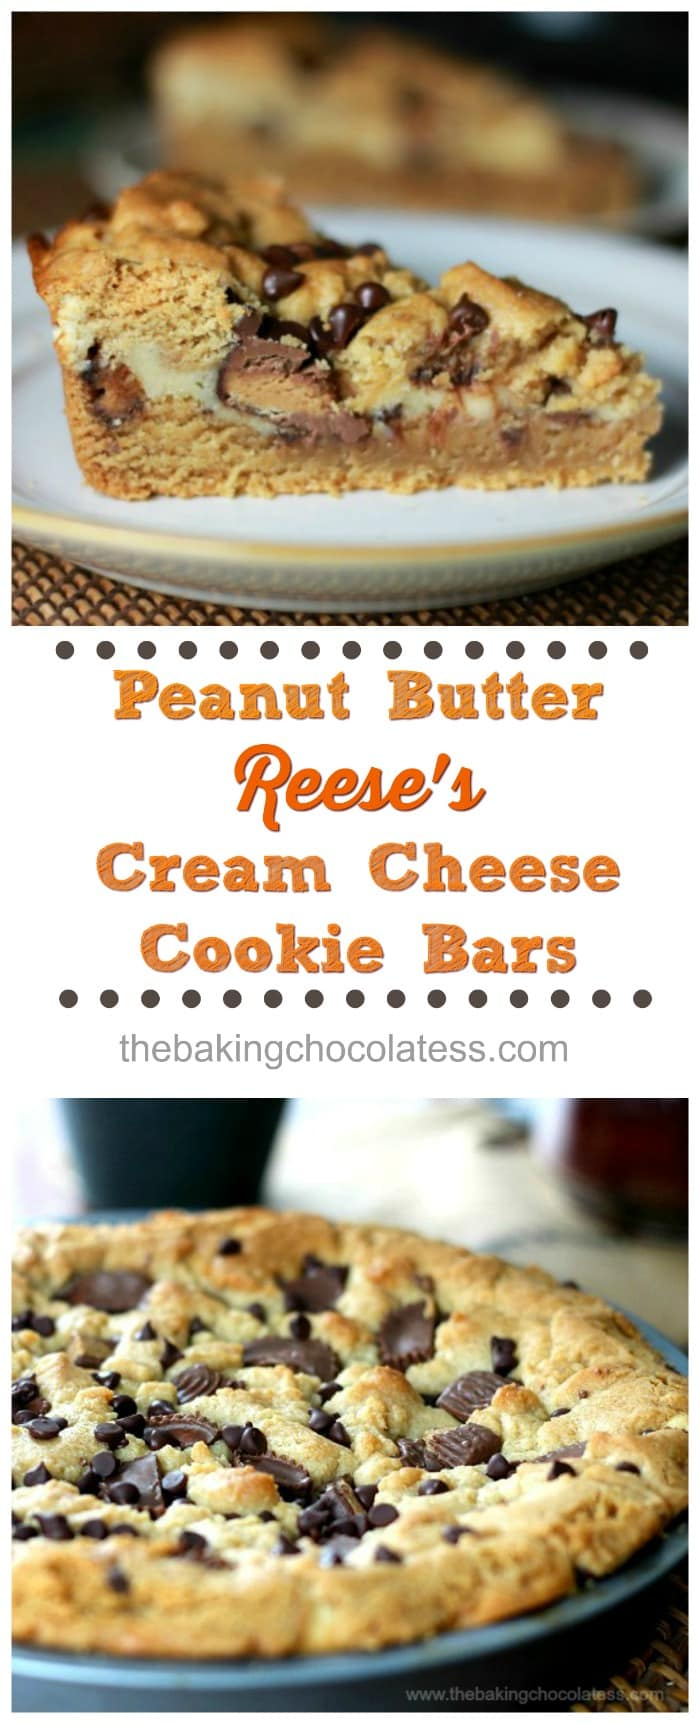 Peanut Butter Reese's Cream Cheese Cookie Bars! Would YOU turn peanut butter & Reese's Cup cookies entertwined with cream cheese down?   - #peanutbutter #reeses #bars #baking #creamcheese